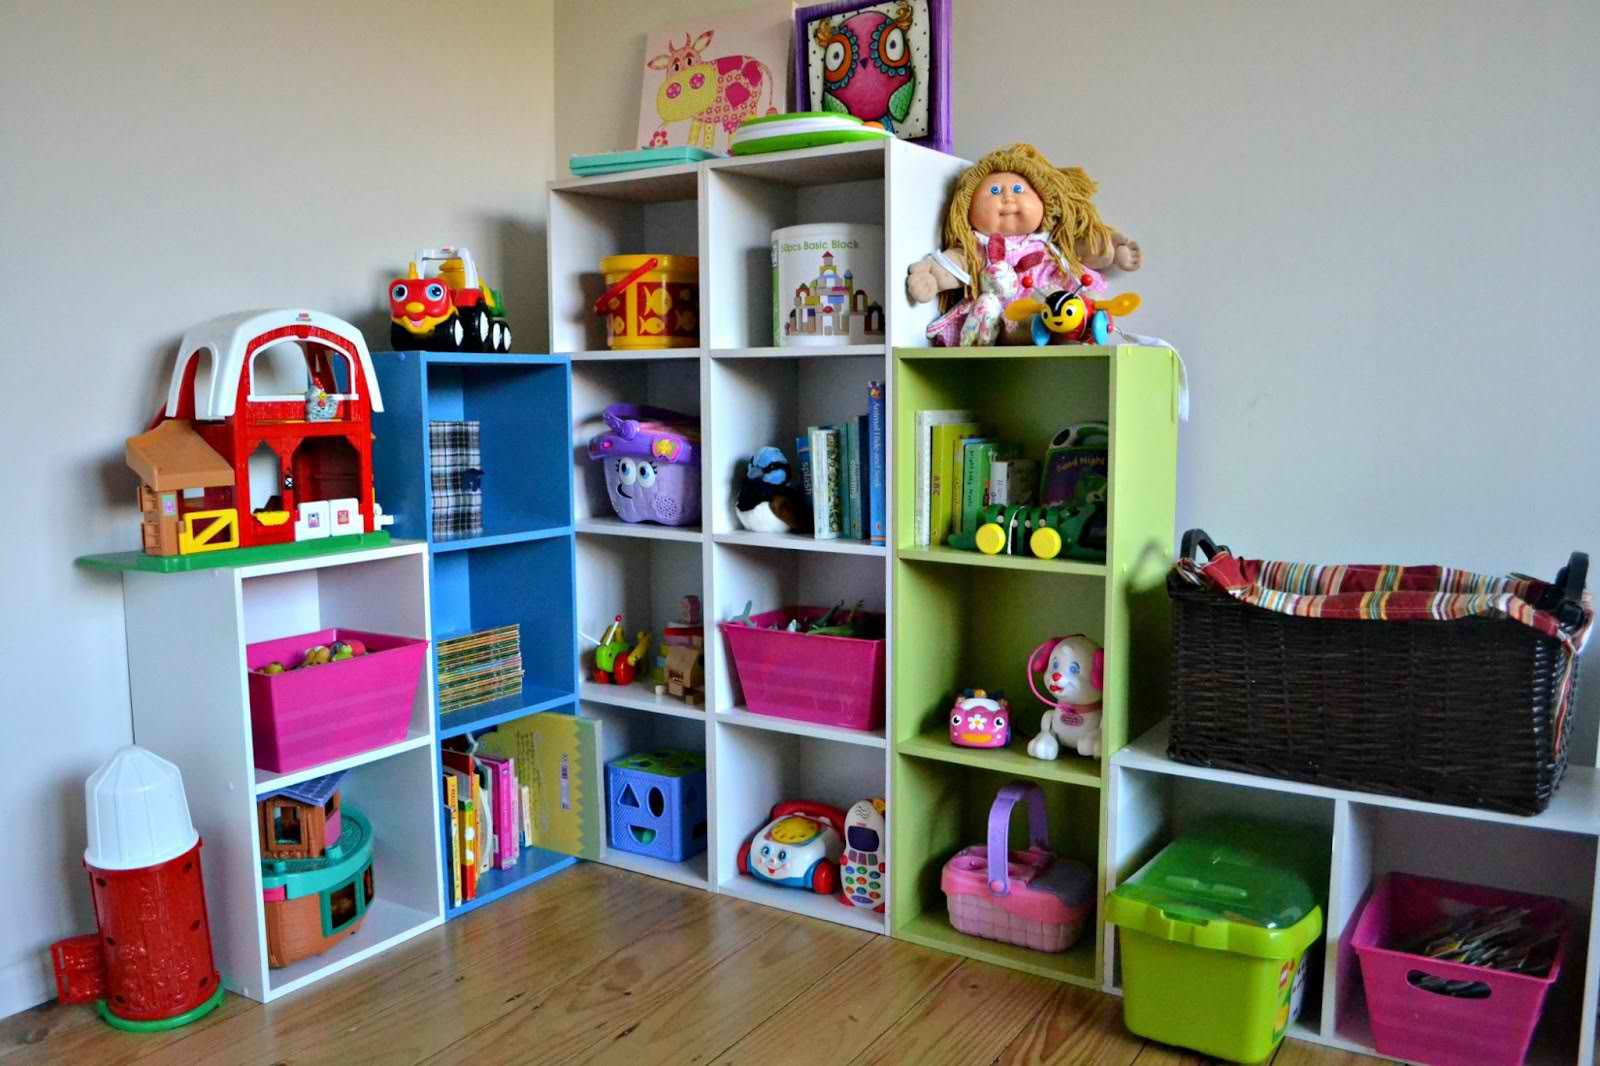 toy storage ideas for living room. Toy Storage Ideas Living Room For Small Spaces. Learn How To Organize Toys In A Space, Furniture, And DIY Ideas. O